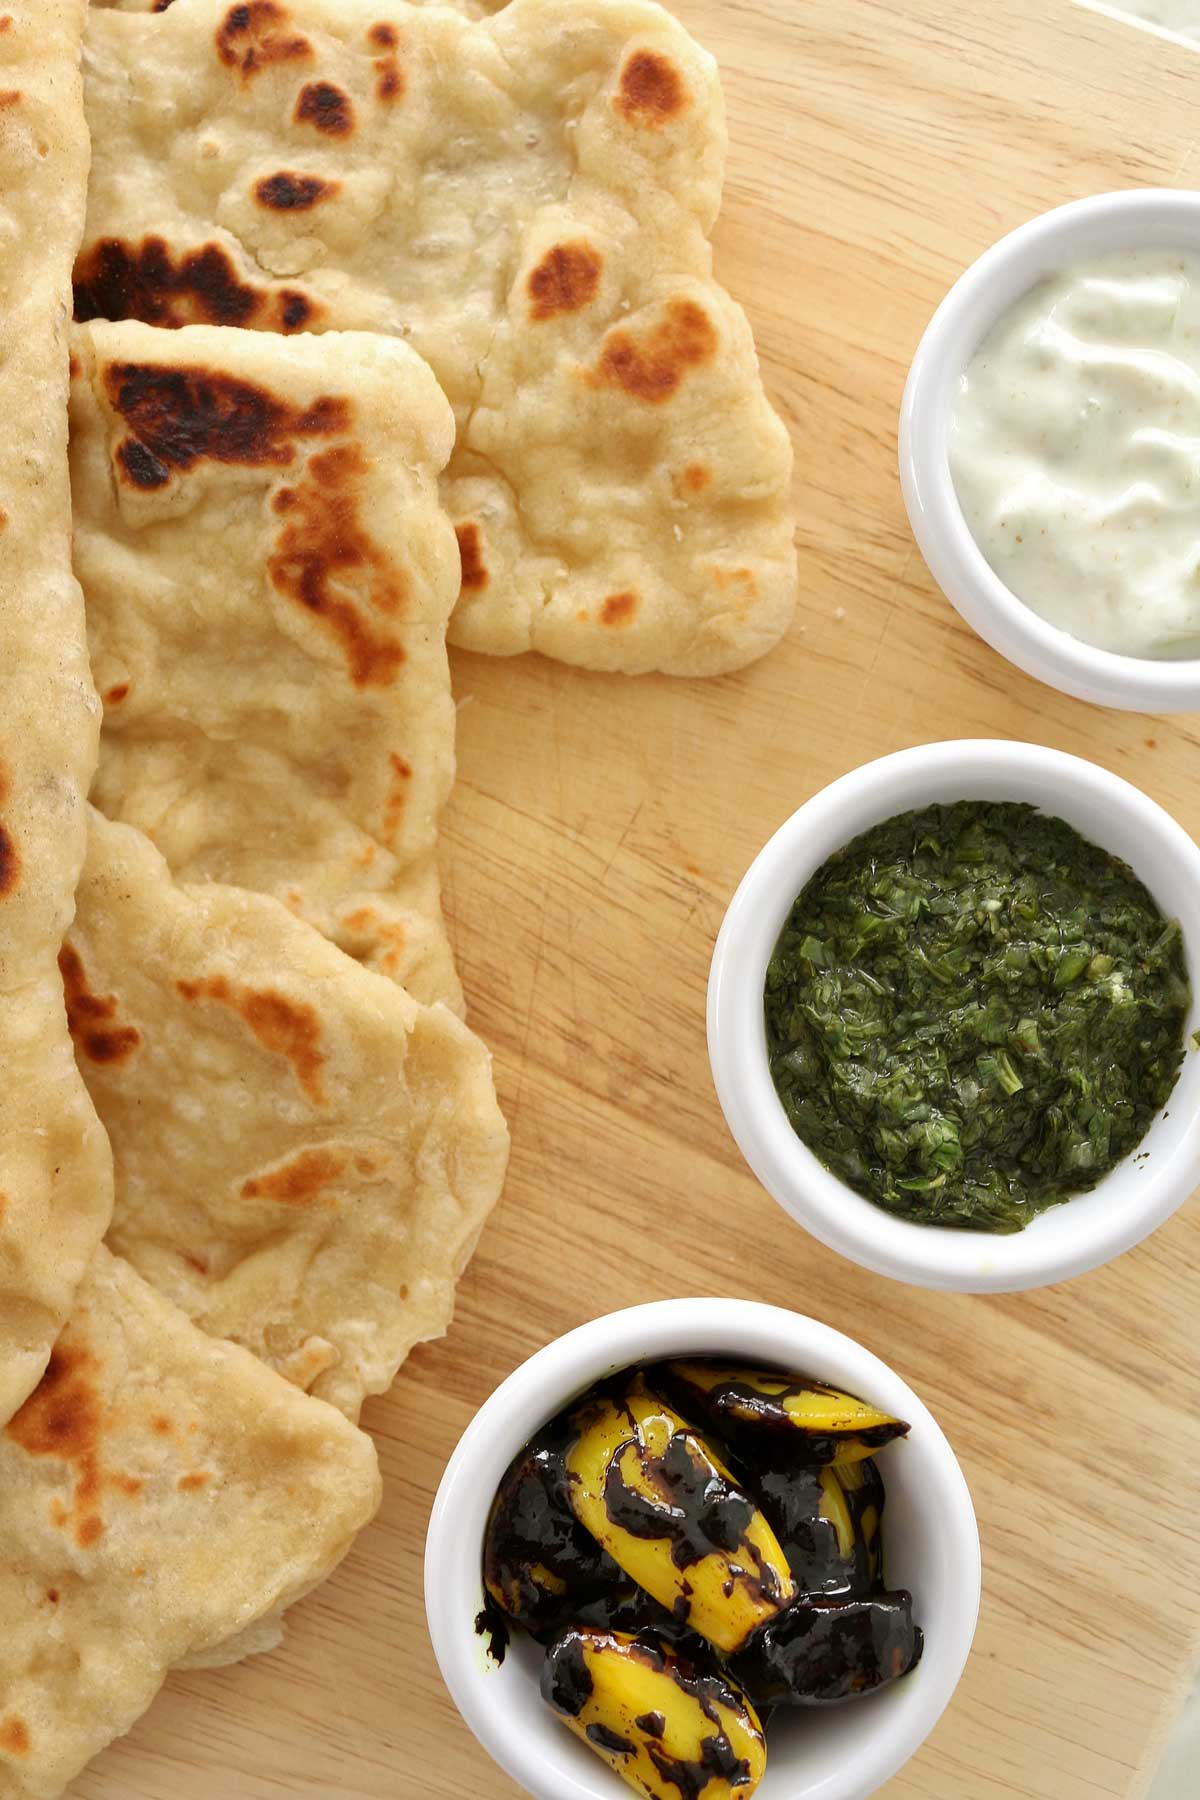 A close up 3 small cups filled with Sanaa dipping sauces next to naan bread.